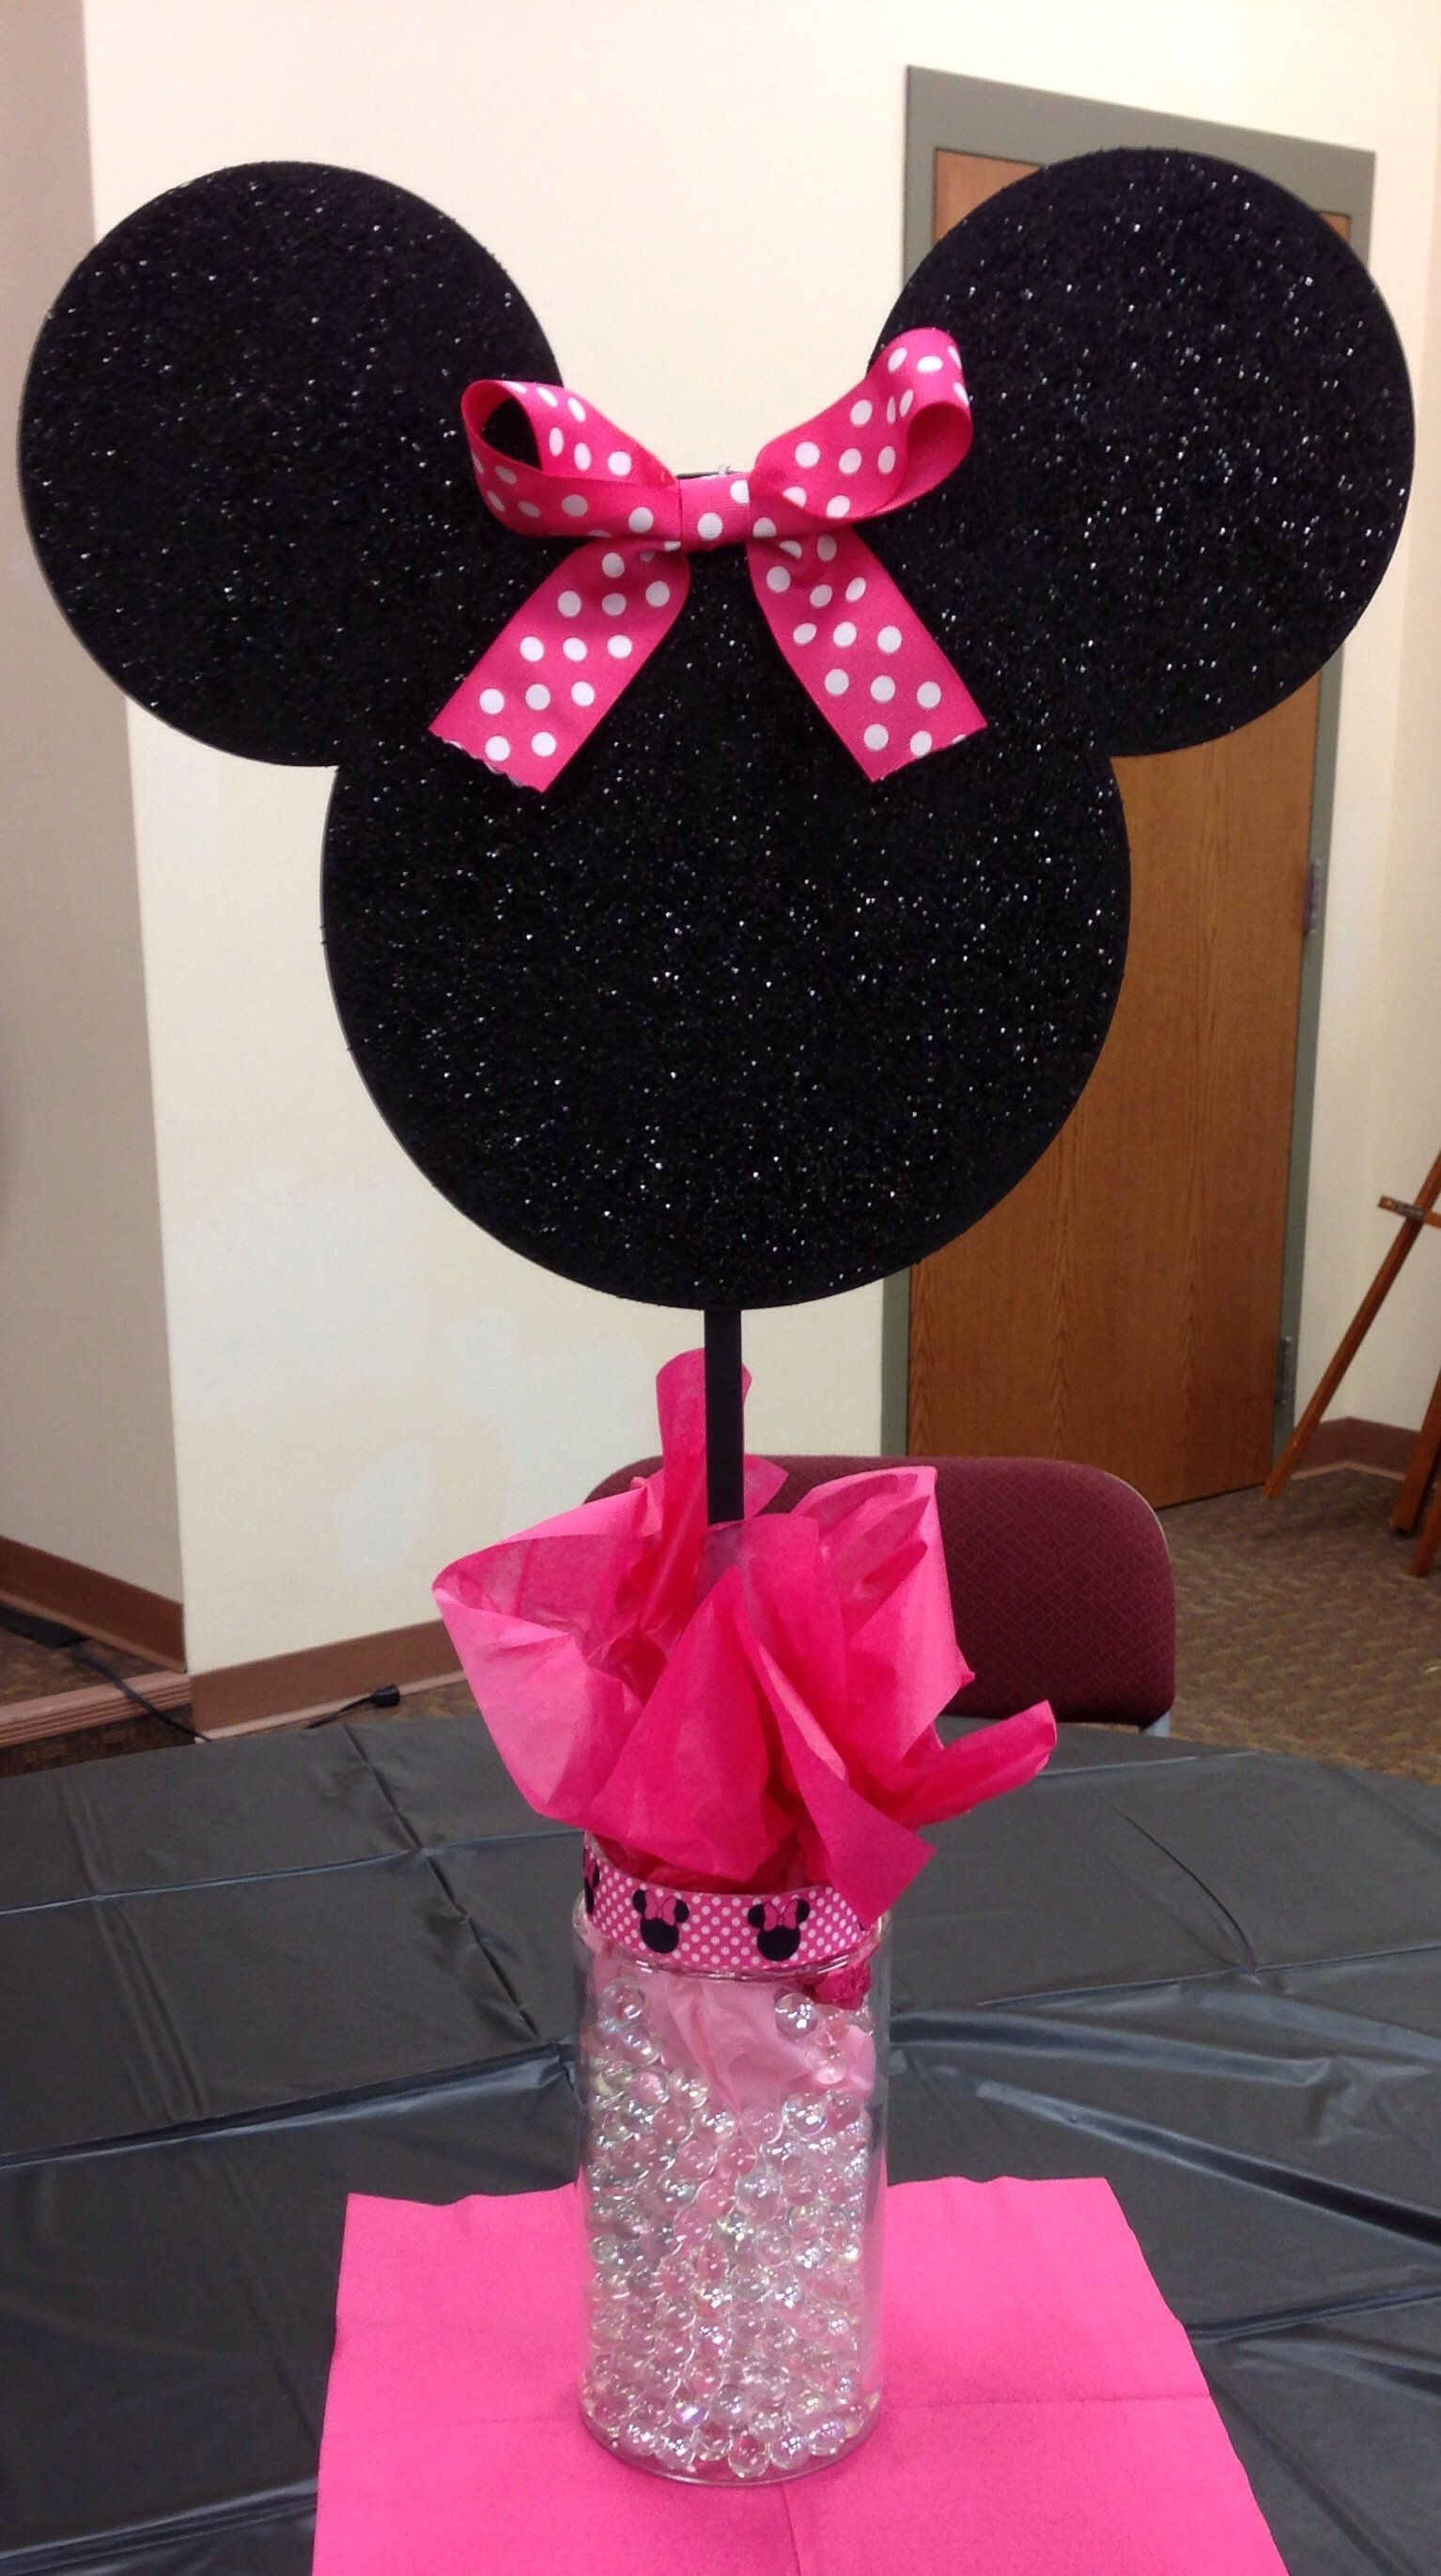 10 Wonderful Minnie Mouse Ideas For Birthday Party minnie mouse centerpieces first birthday decorations minnie theme 1